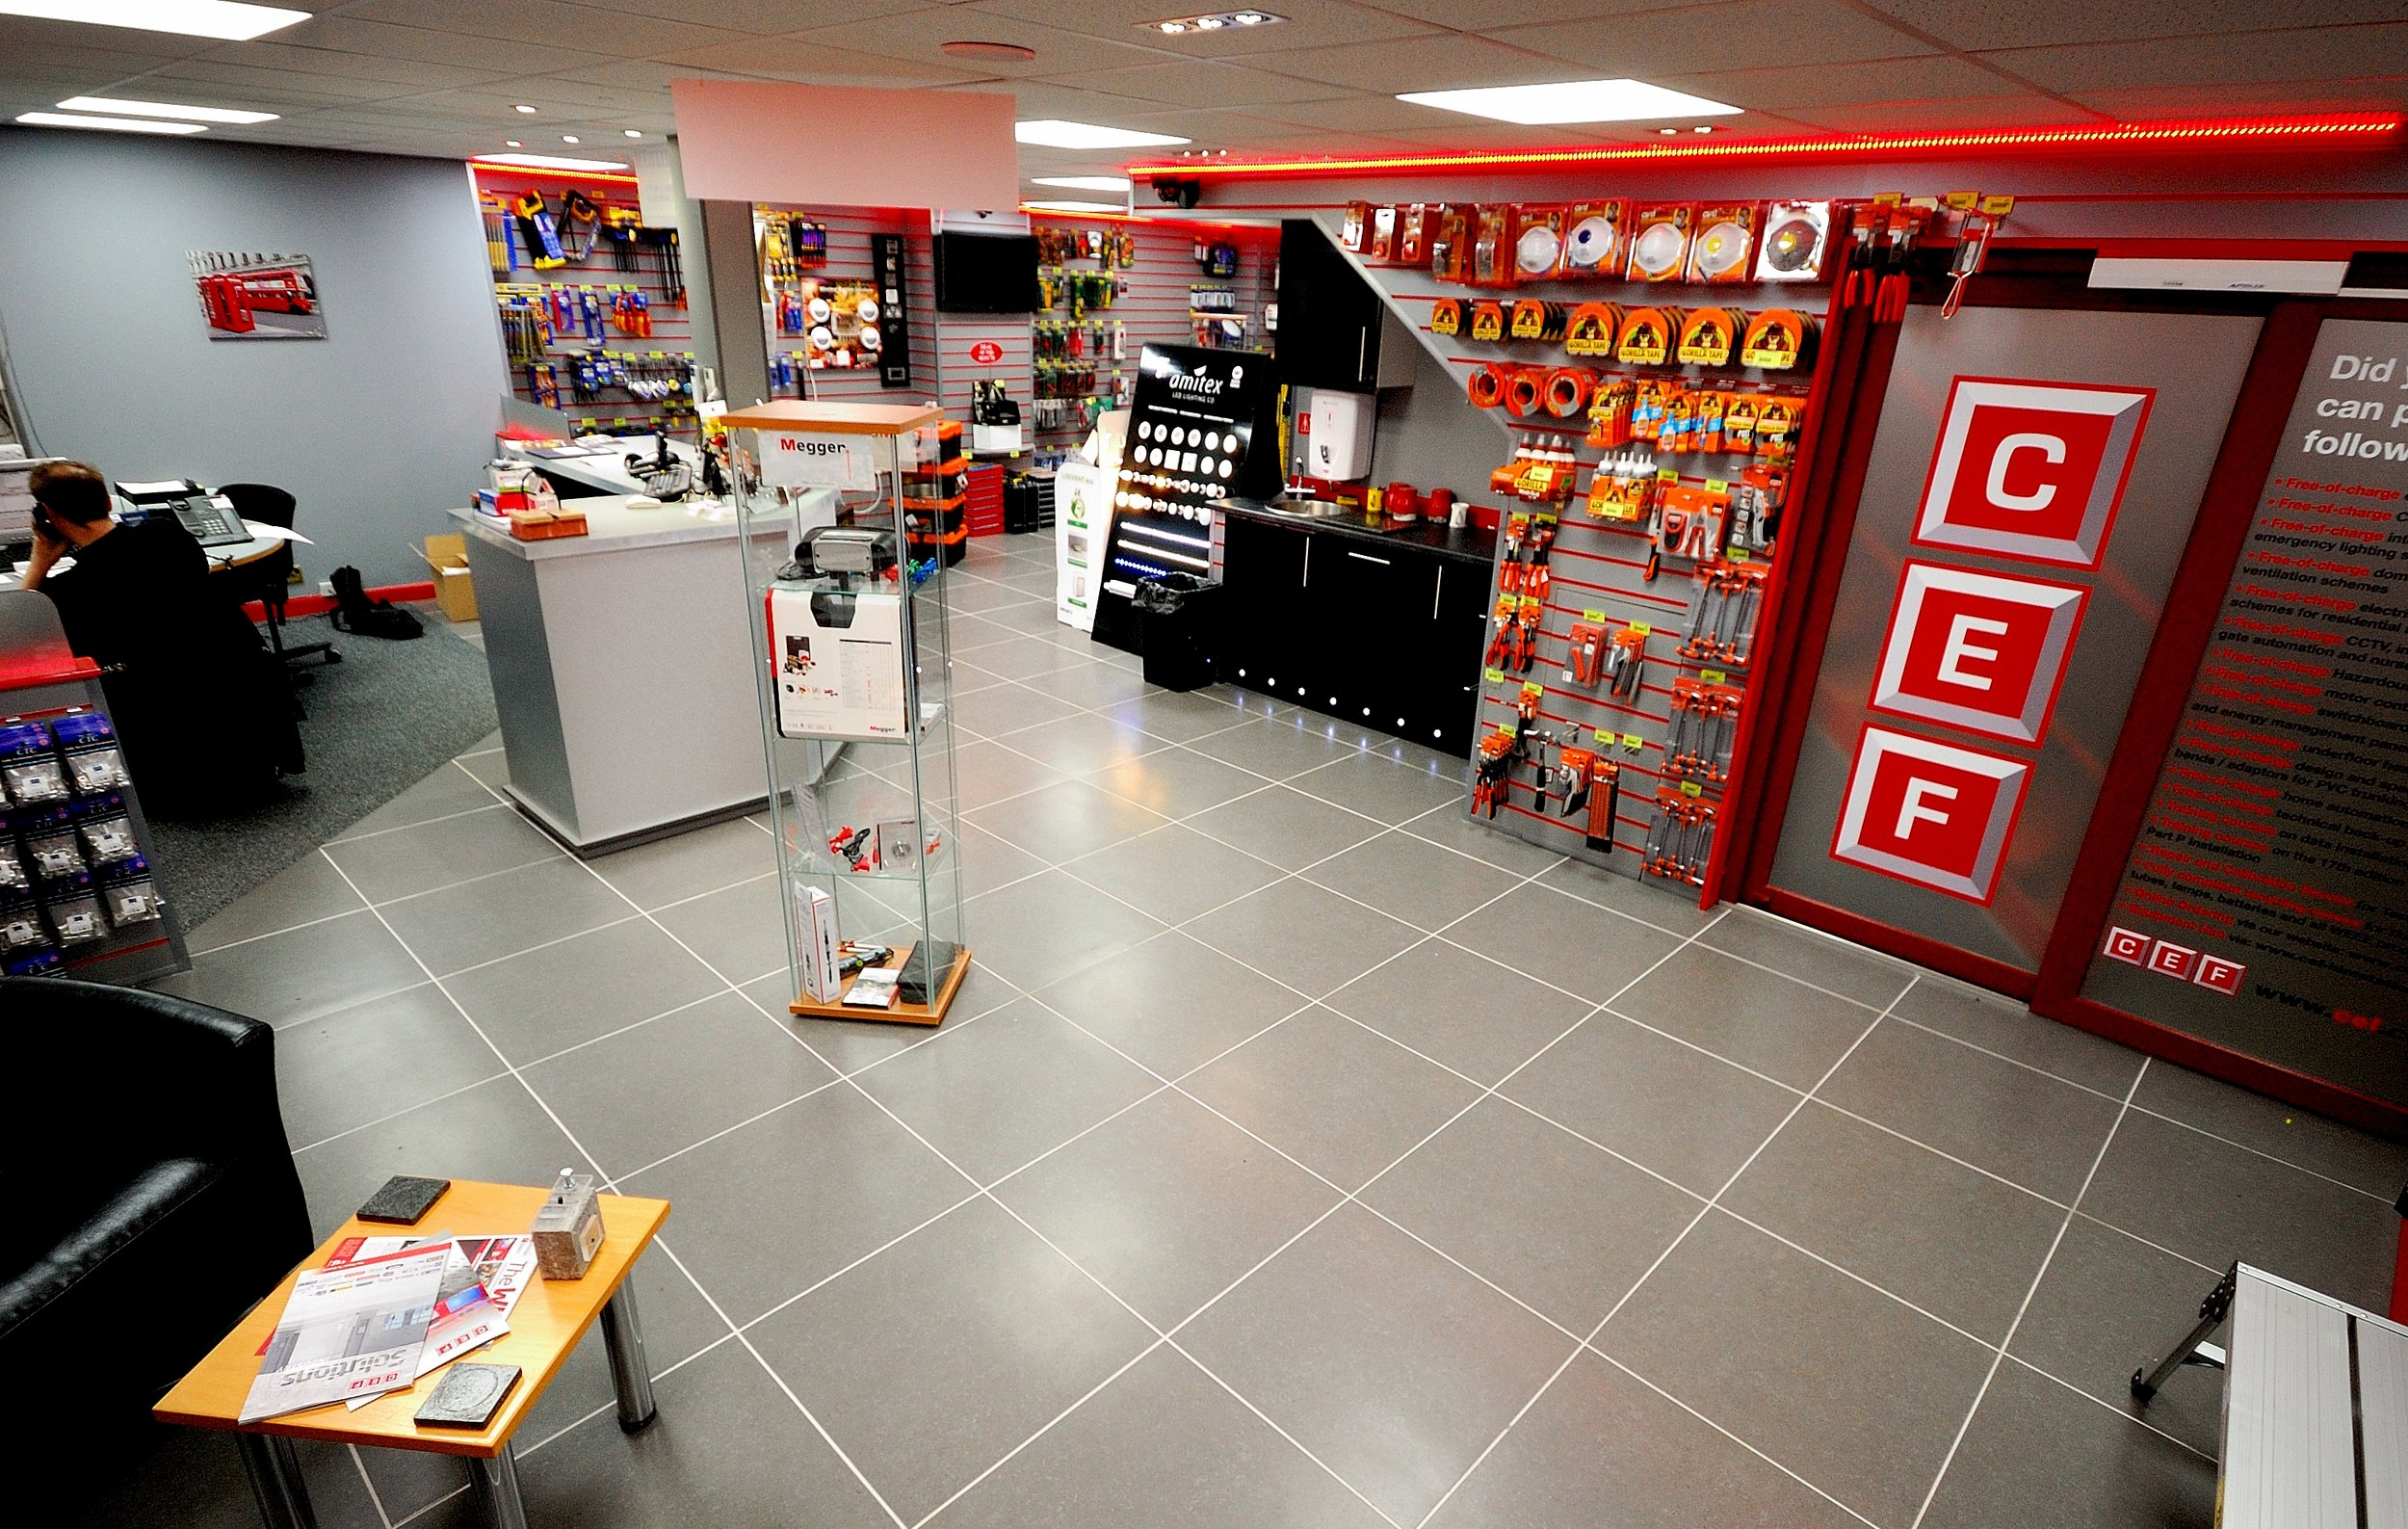 CEF, Electrical wholesaler, Sutton Coldfield. - Commercial grade porcelain tiles in this trade electrical supplier near Birmingham.